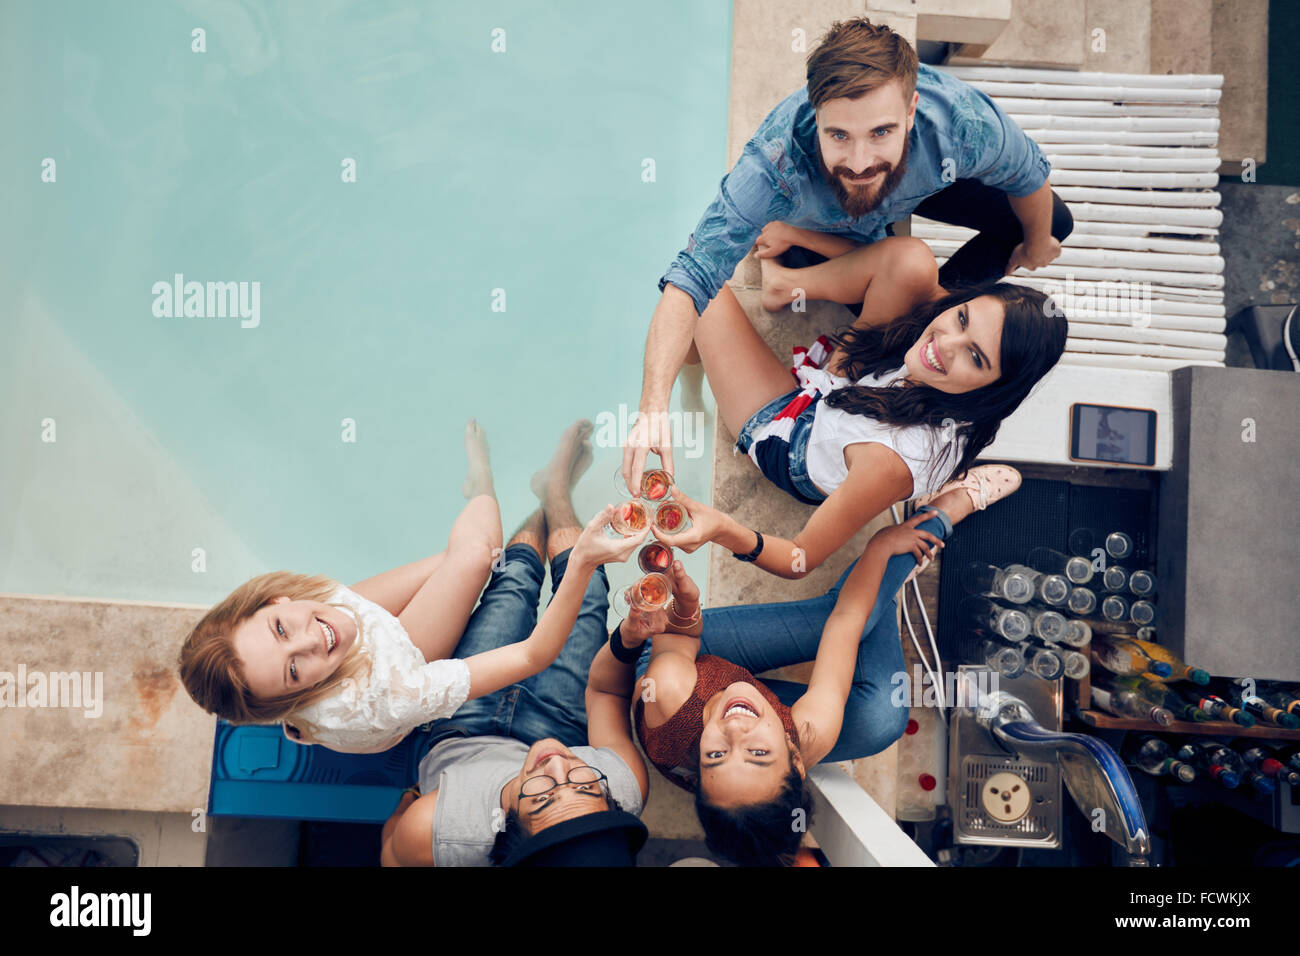 Overhead view of group of friends toasting at party by a swimming pool and looking up at camera smiling. Multiracial - Stock Image